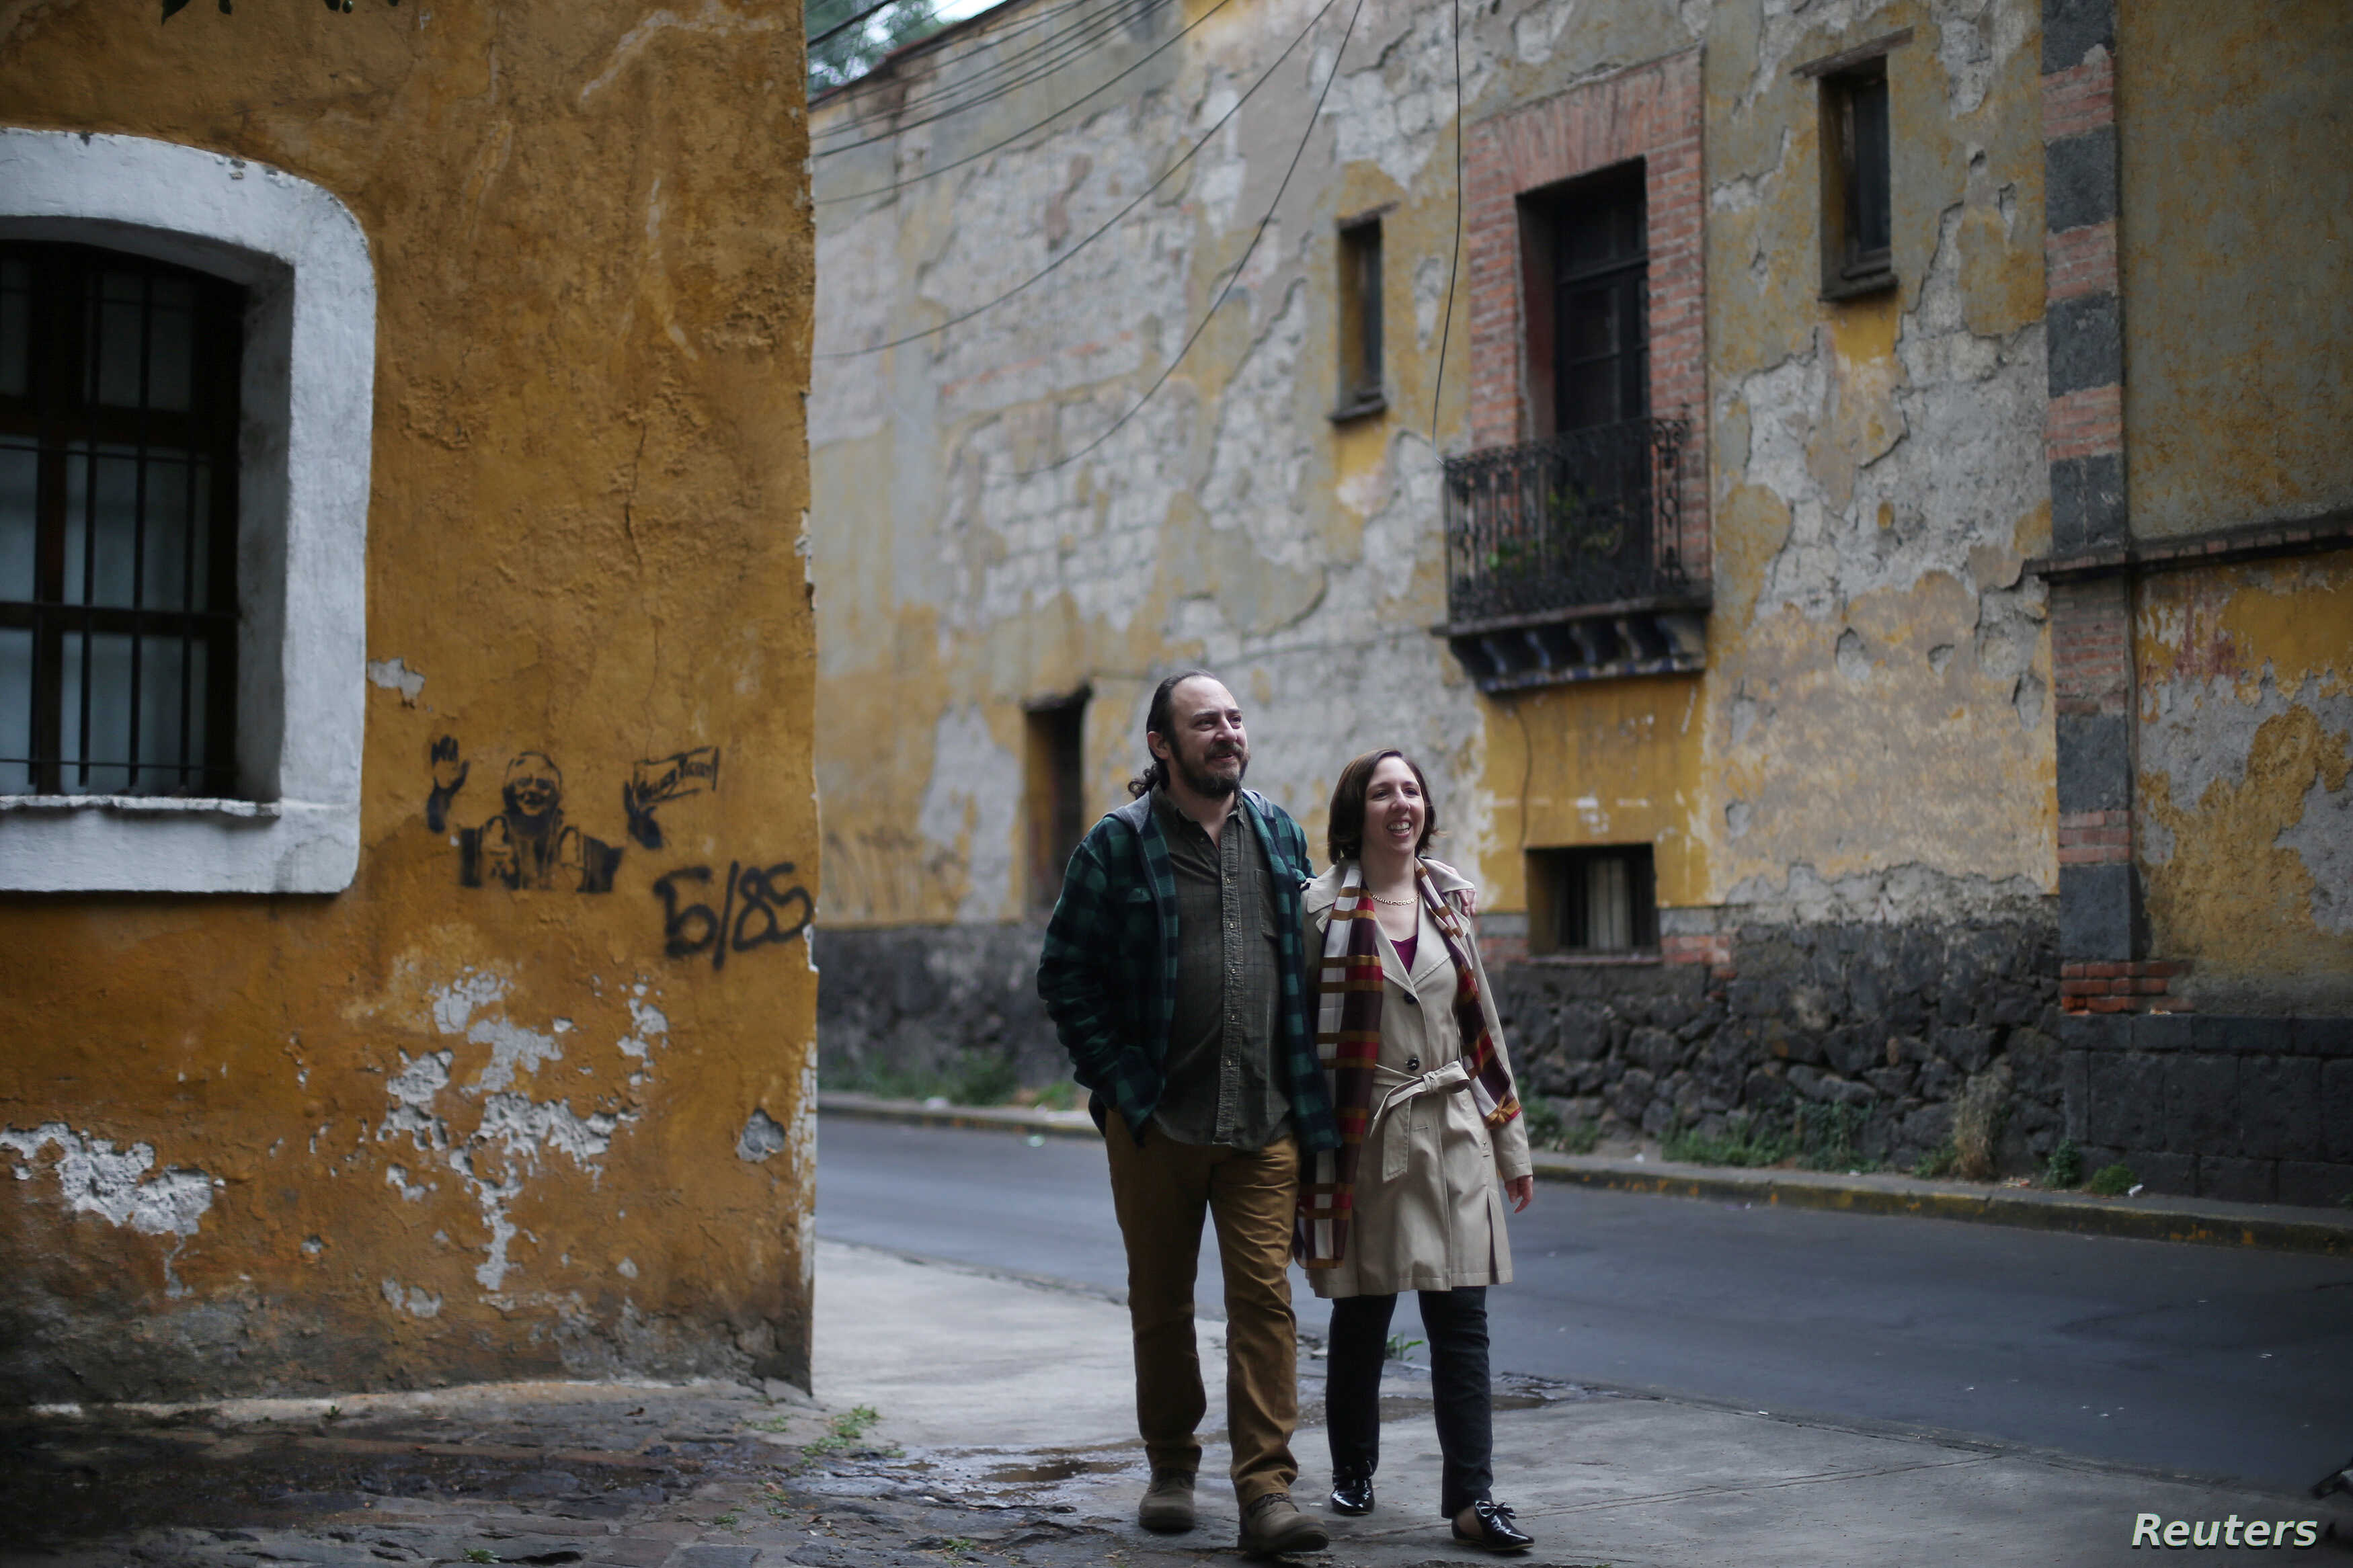 Alejandra, 44, an education policy consultant and Razhy, 48, a journalist and a human rights activist, walk on a street in the Coyoacan neighborhood, in Mexico City, Mexico, Feb. 9, 2018. The couple met in Mexico City in 1998, after Razhy was kidnapp...